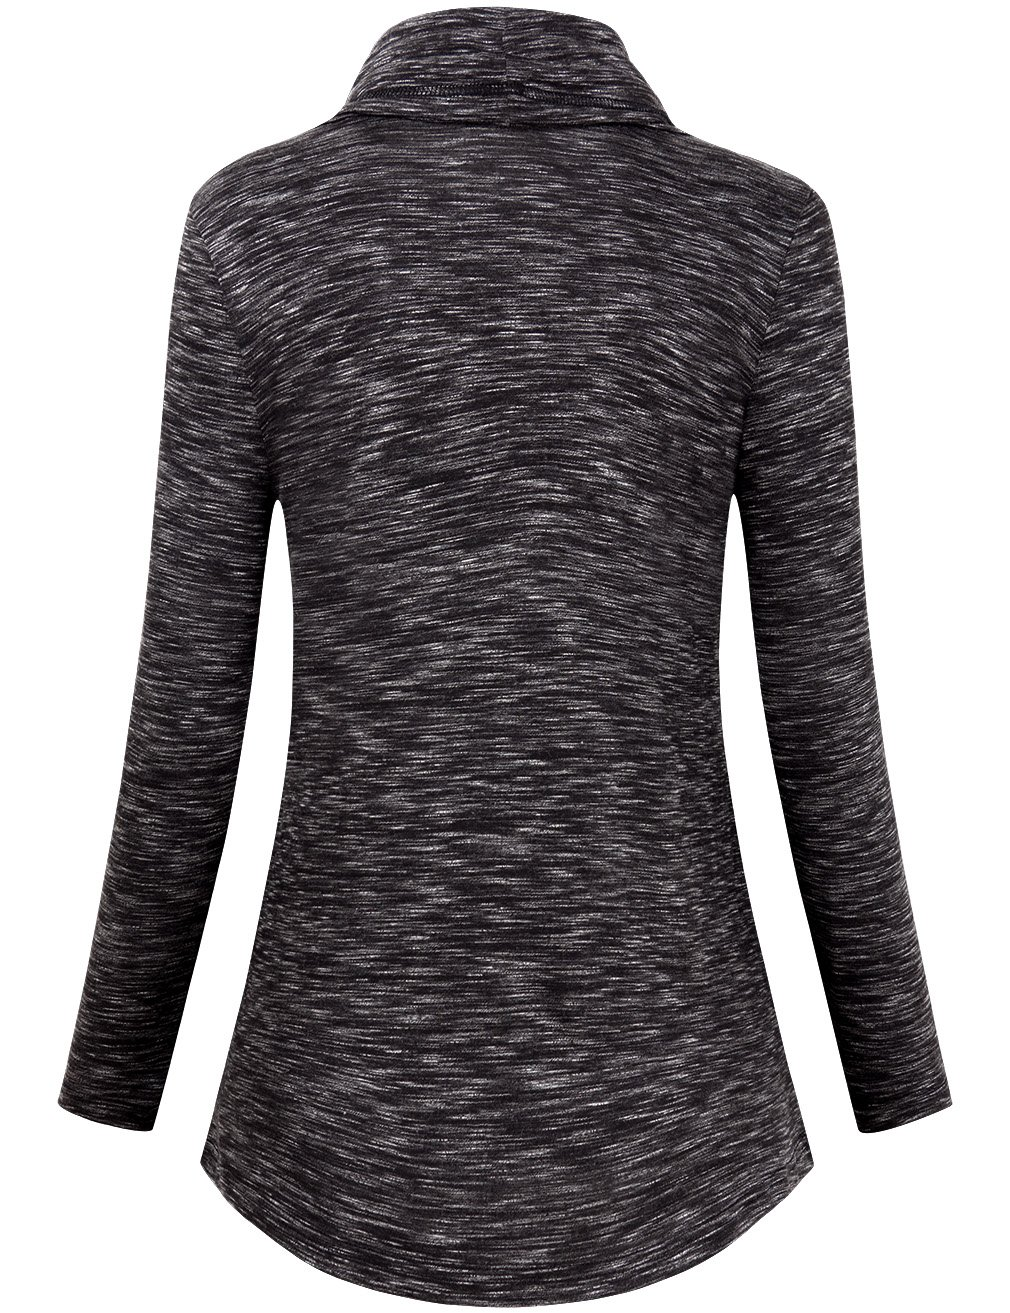 Faddare Activewear Long Sleeve Tops for Women,Cowl Neck Shirt,Black White XL by Faddare (Image #2)